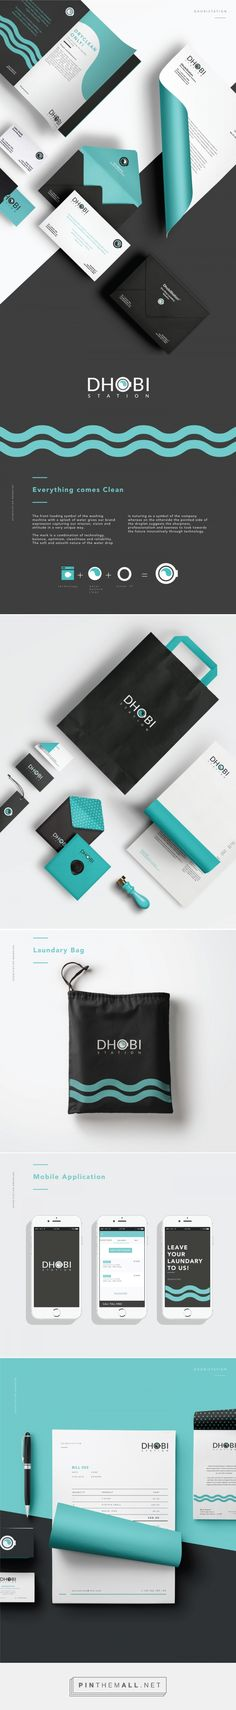 Dhobistation One Stop Laundry Solution Branding by Meroo Seth | Fivestar Branding – Design and Branding Agency & Inspiration Gallery